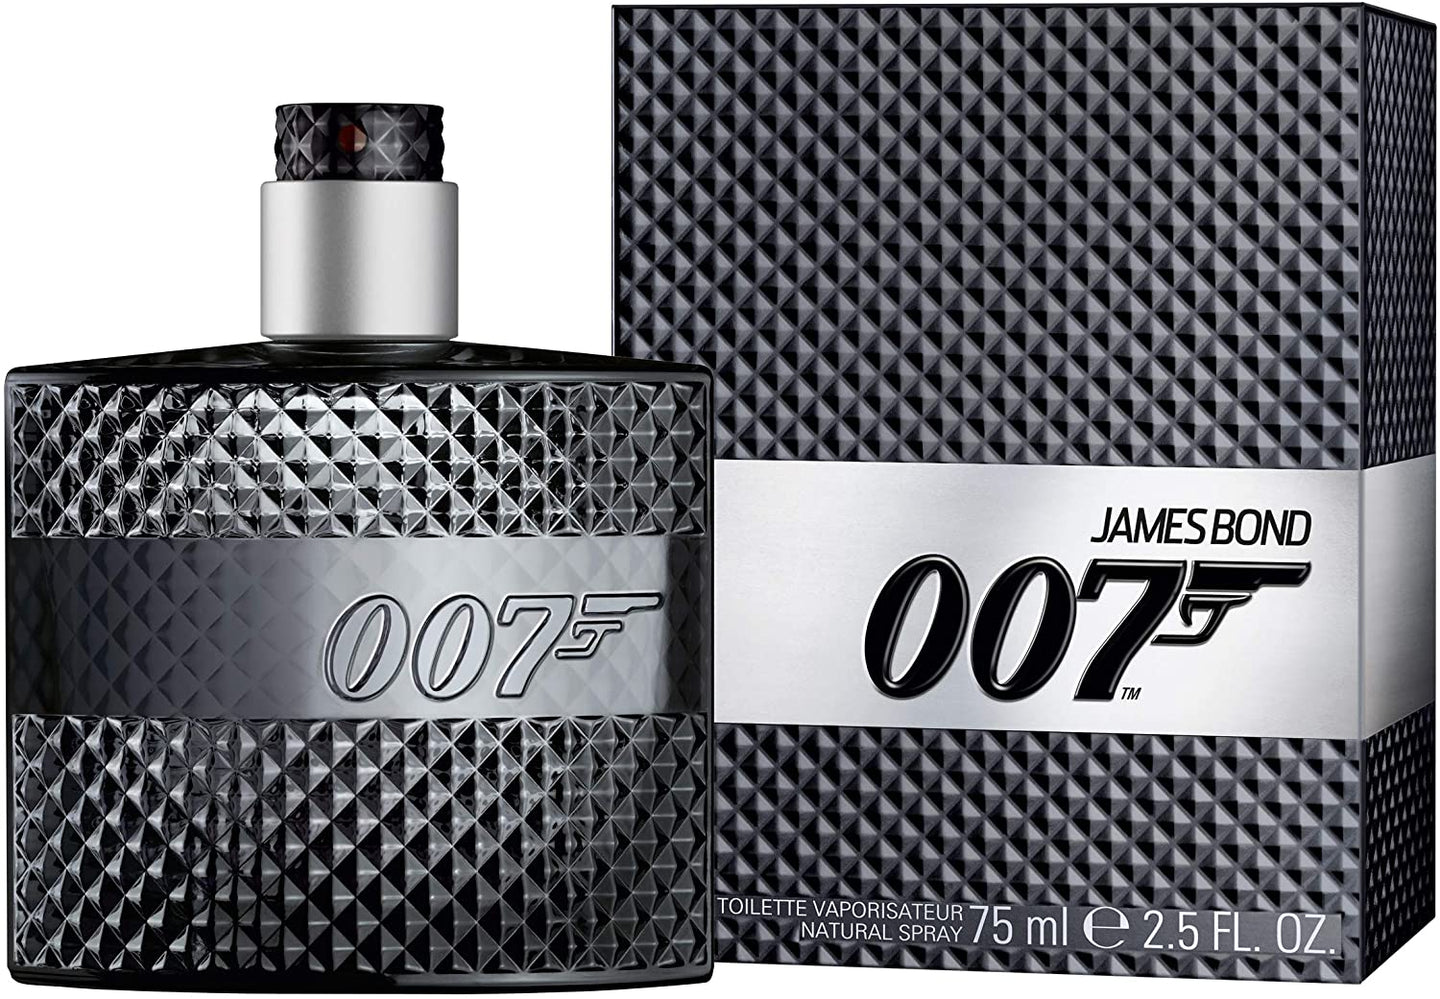 James Bond 007 Signature Eau De Toilette Fragrance For Men, 75 ml